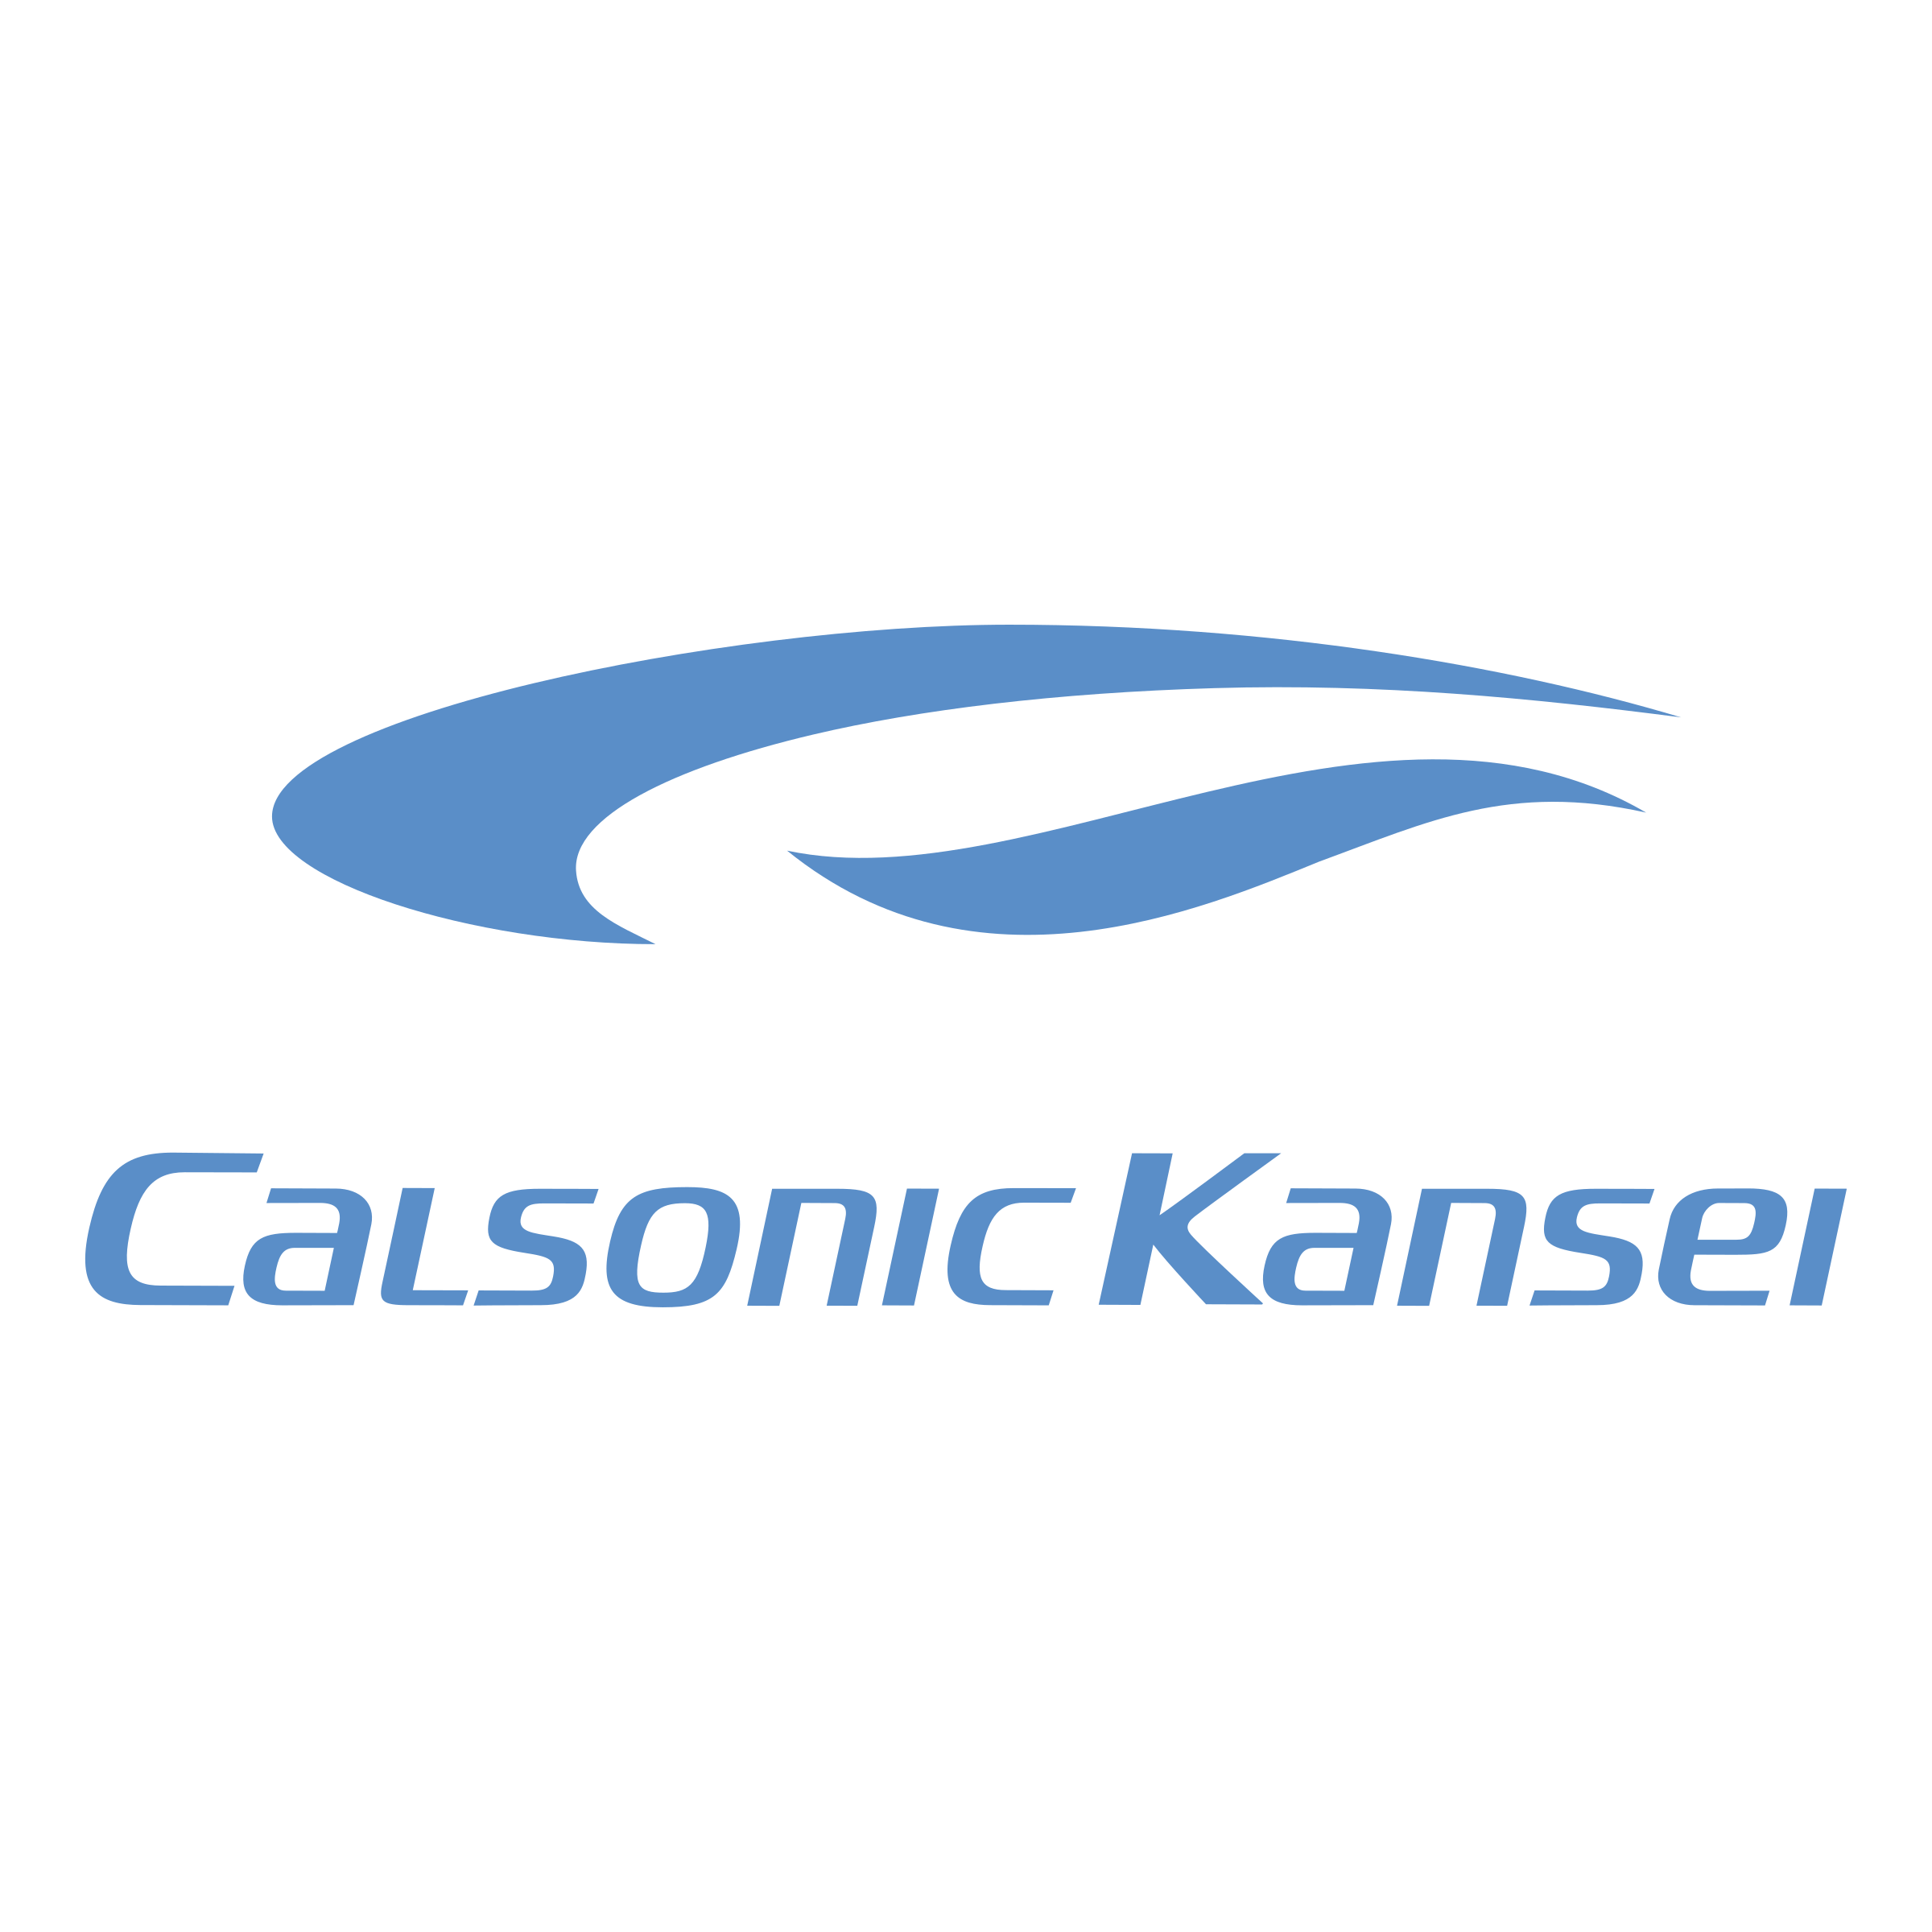 calsonic kansei logo png transparent   svg vector car vector icon free download car vector image